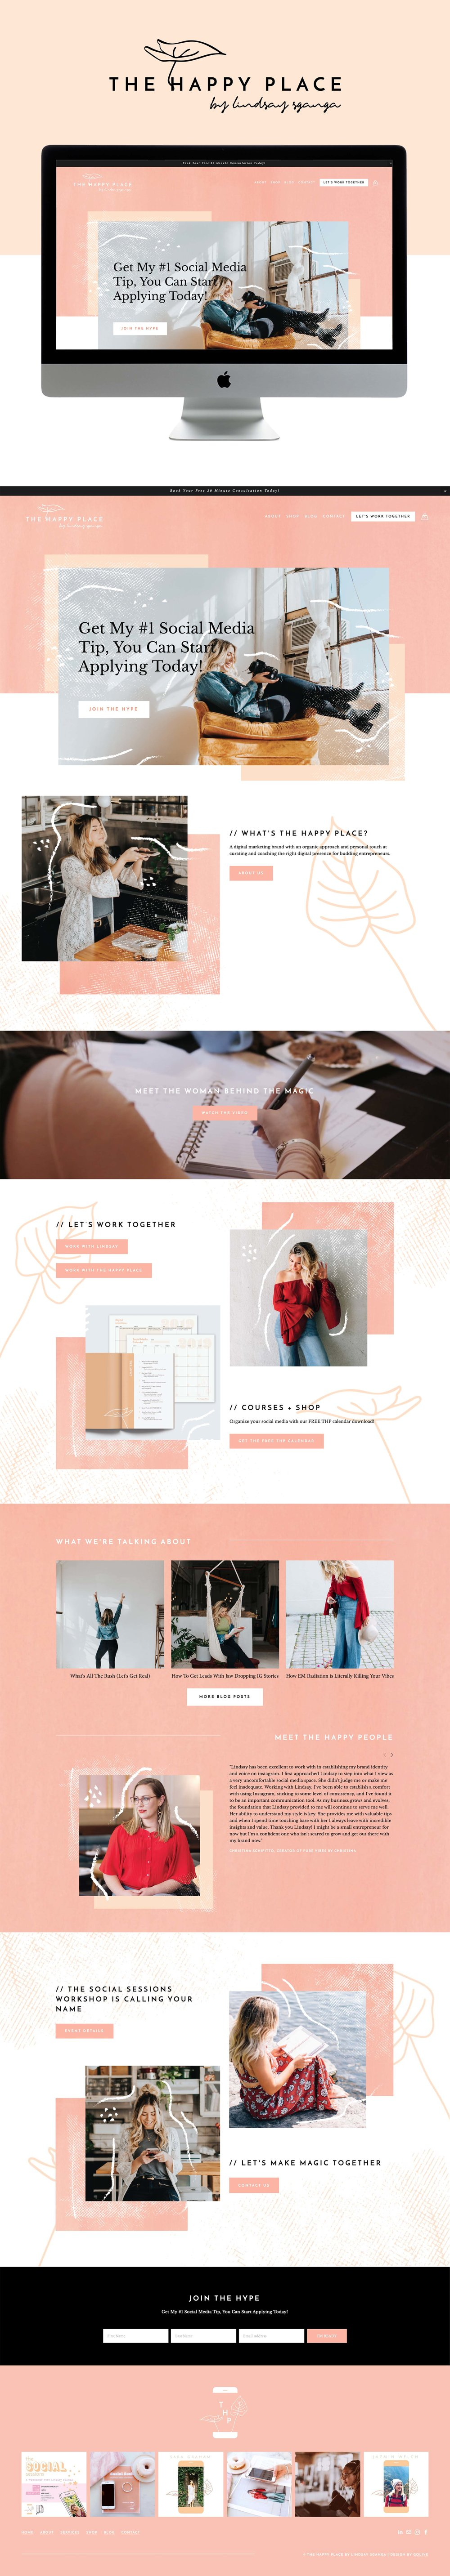 Bright, Modern, Fun Squarespace Website Design For Digital Marketing Agency By GoLive